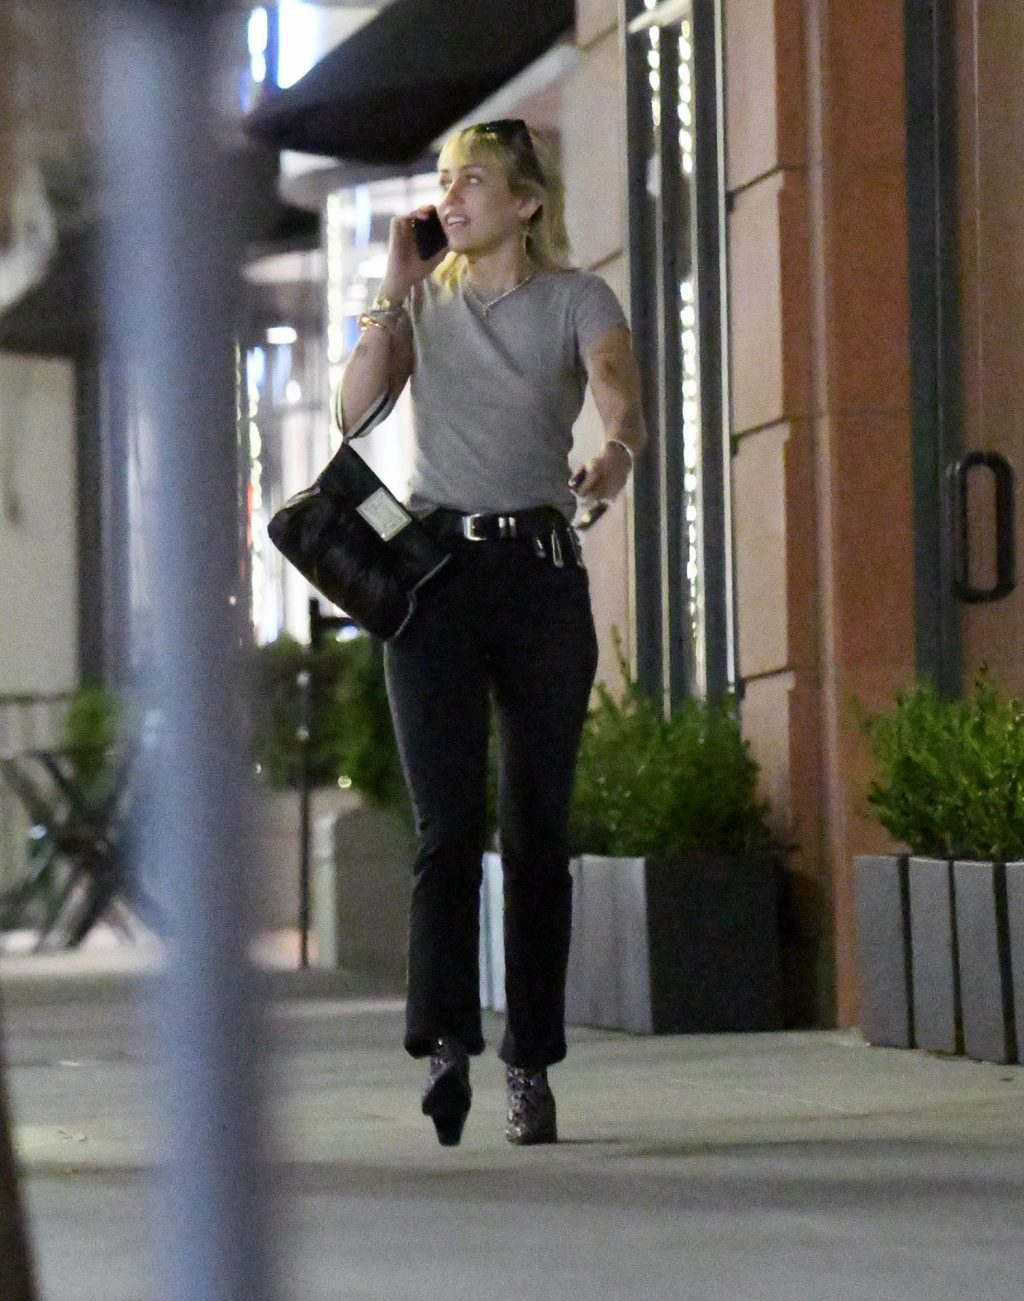 Miley Cyrus Steps Out Solo in Los Angeles After Finalizing Her Divorce (28 Photos)